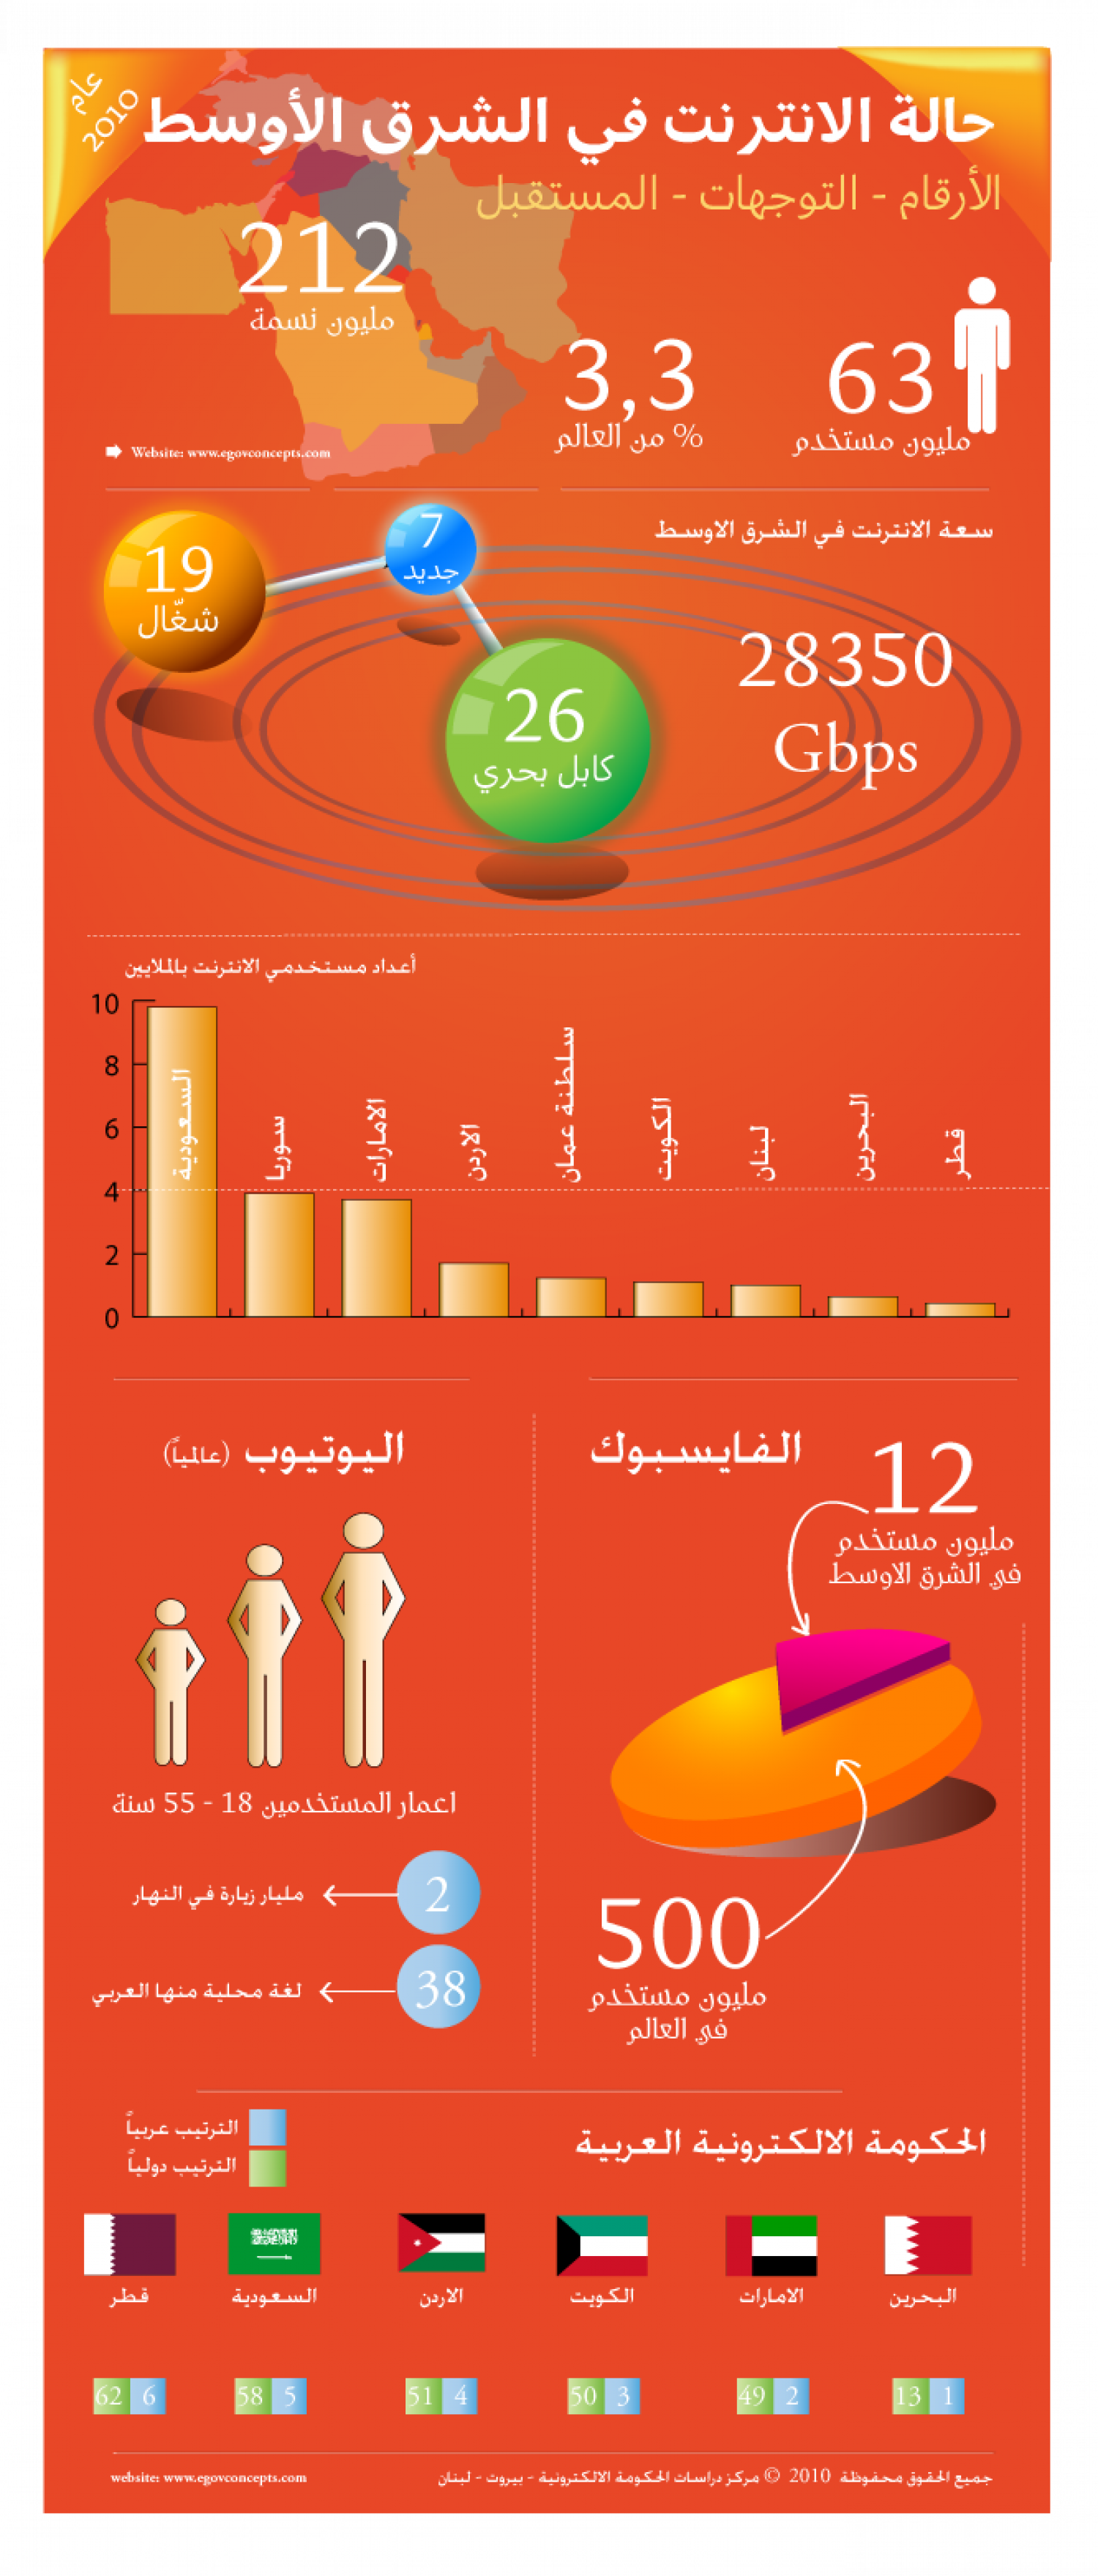 Internet in The Middle East Infographic